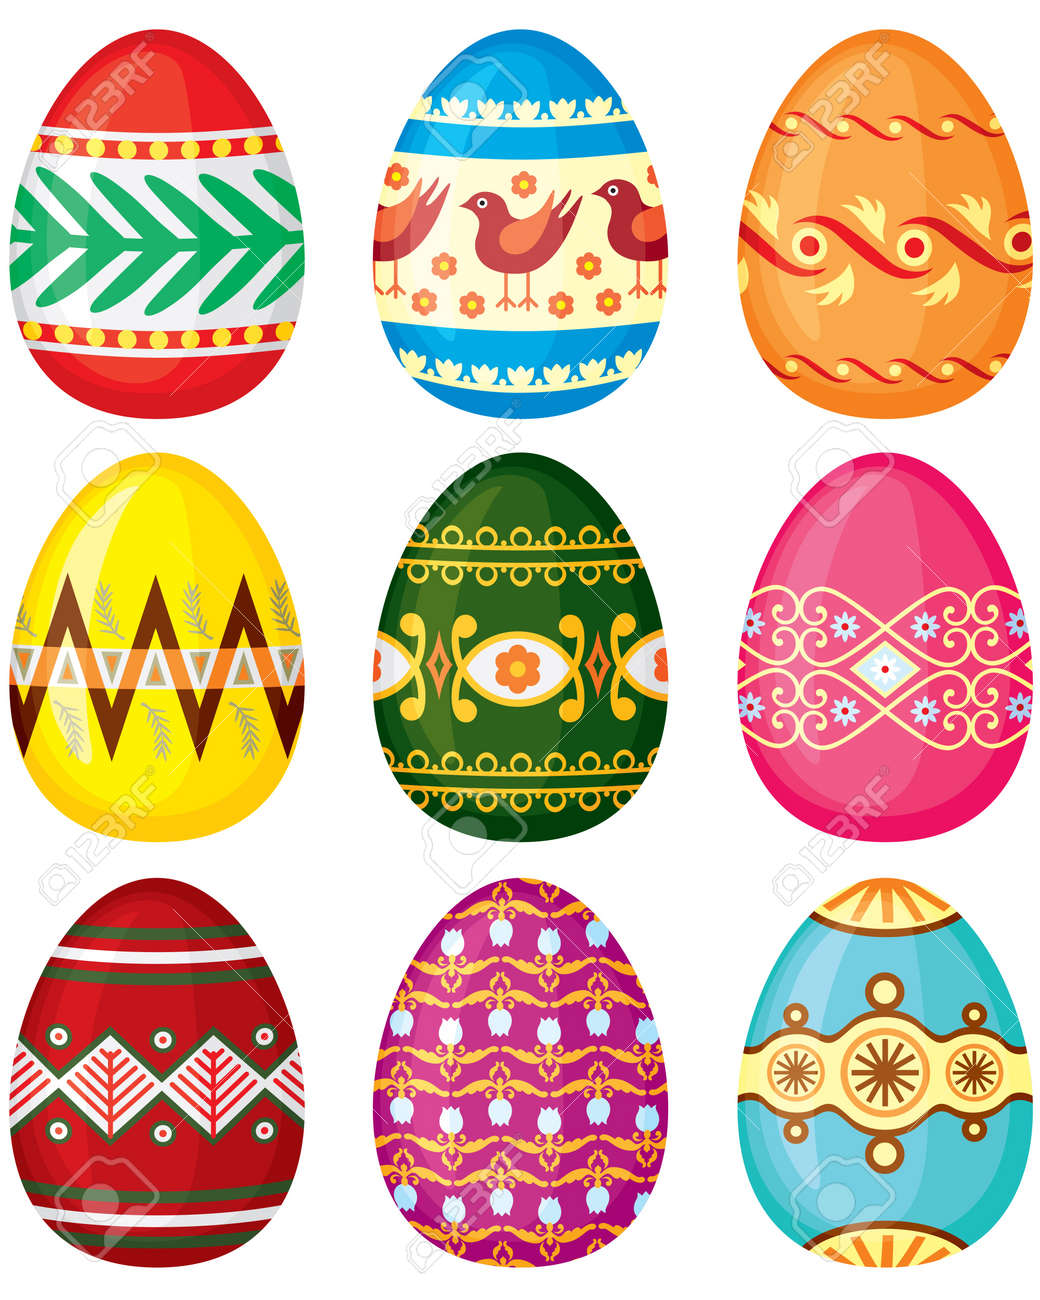 Set Of Color Painted Easter Eggs Vector Illustration No Transparency Royalty Free Cliparts Vectors And Stock Illustration Image 18224662